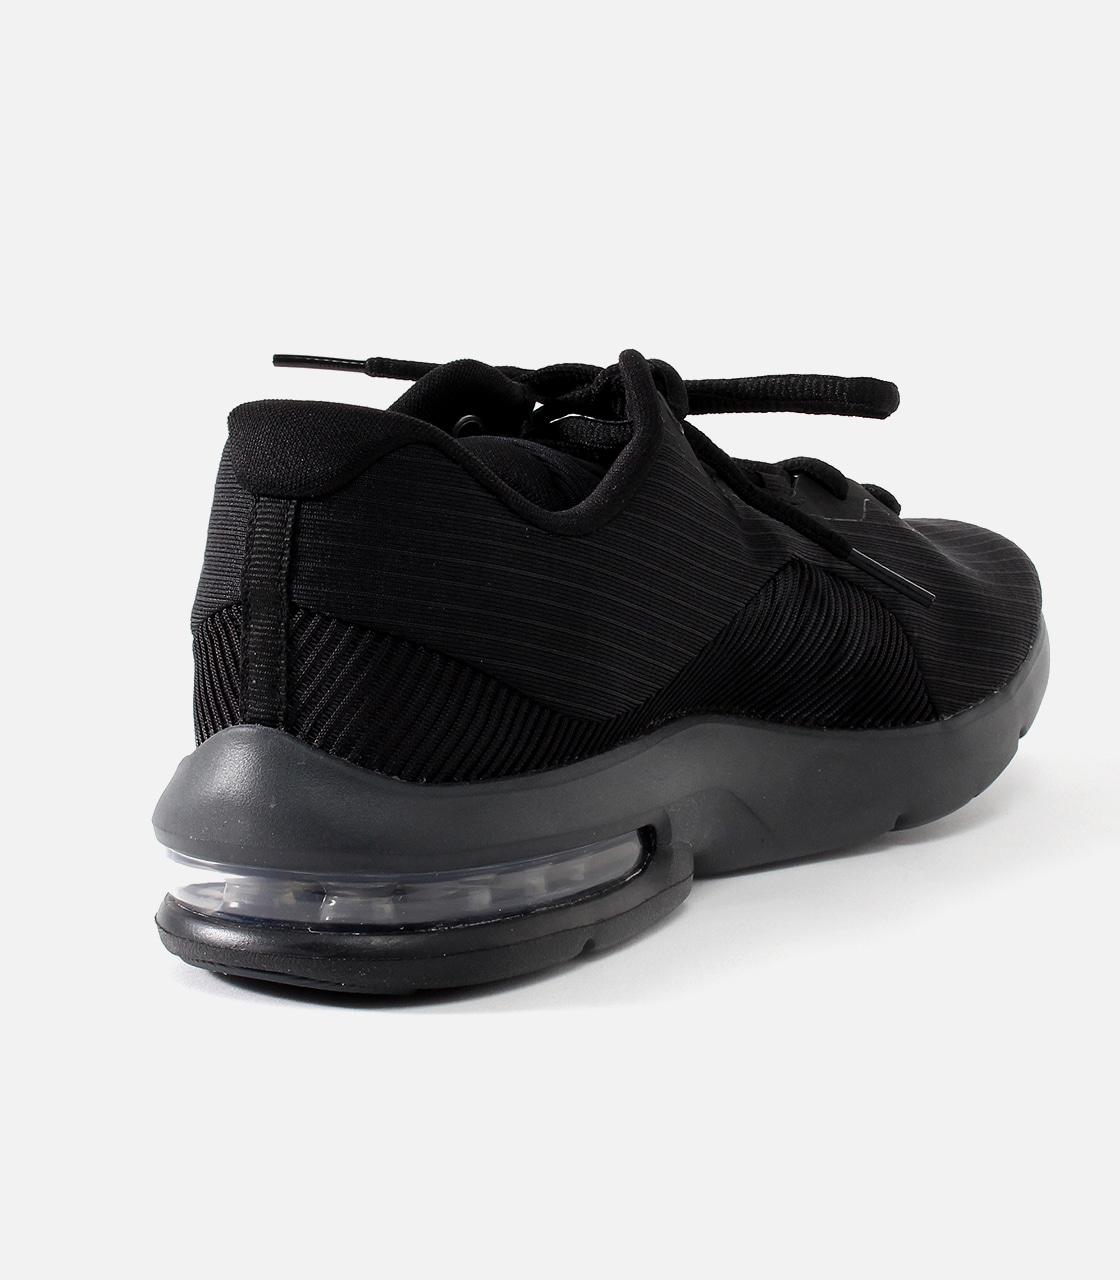 【AZUL BY MOUSSY】NIKE AIR MAX ADVANTAGE 2 詳細画像 BLK 3